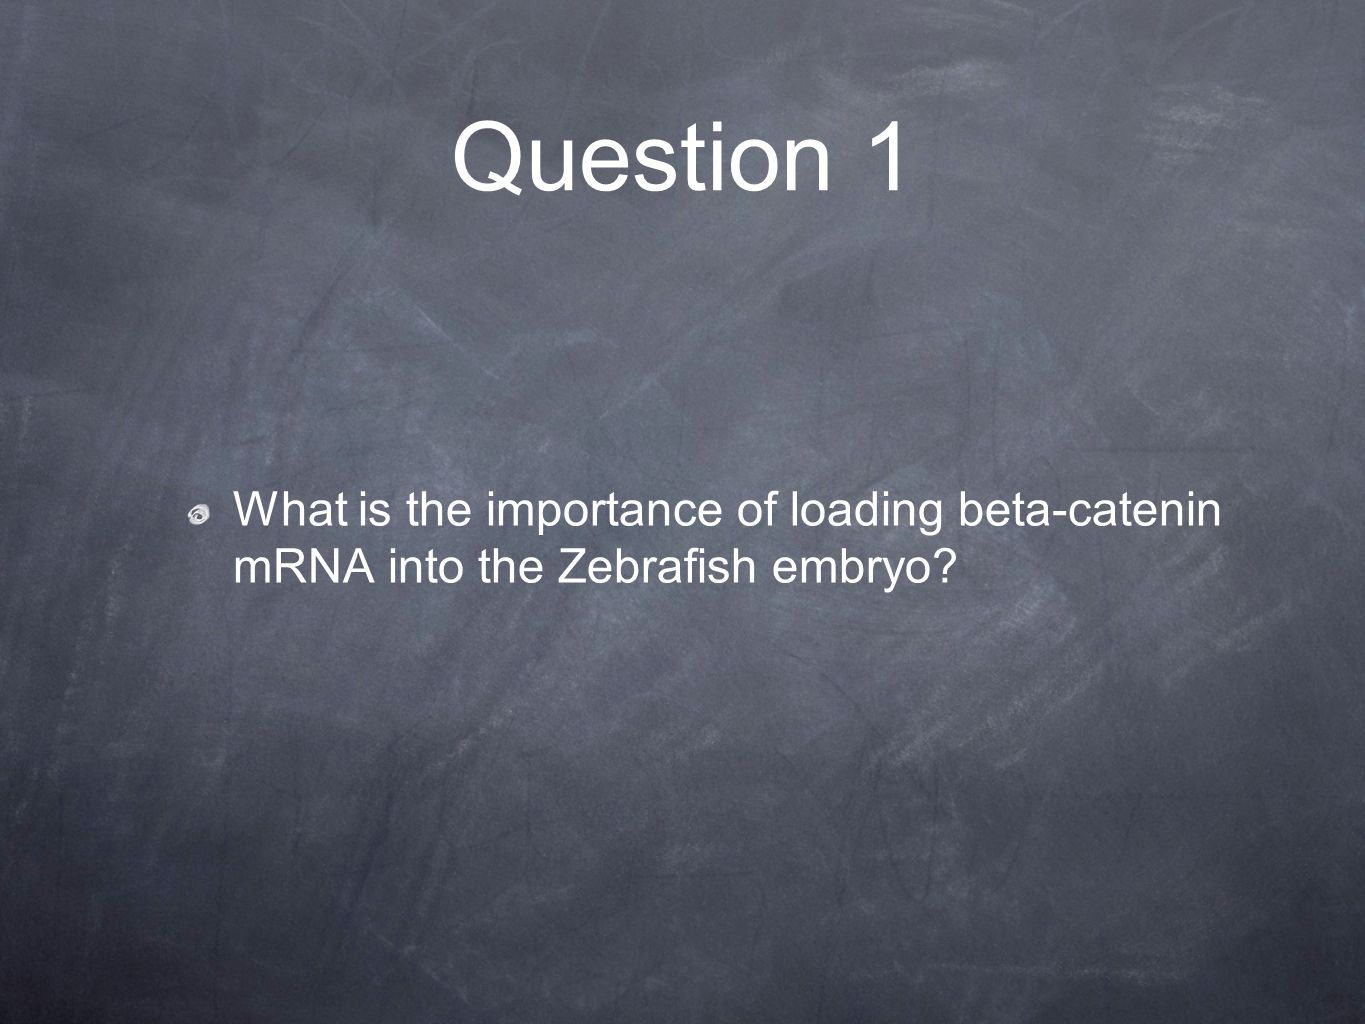 Question 1 What is the importance of loading beta-catenin mRNA into the Zebrafish embryo?